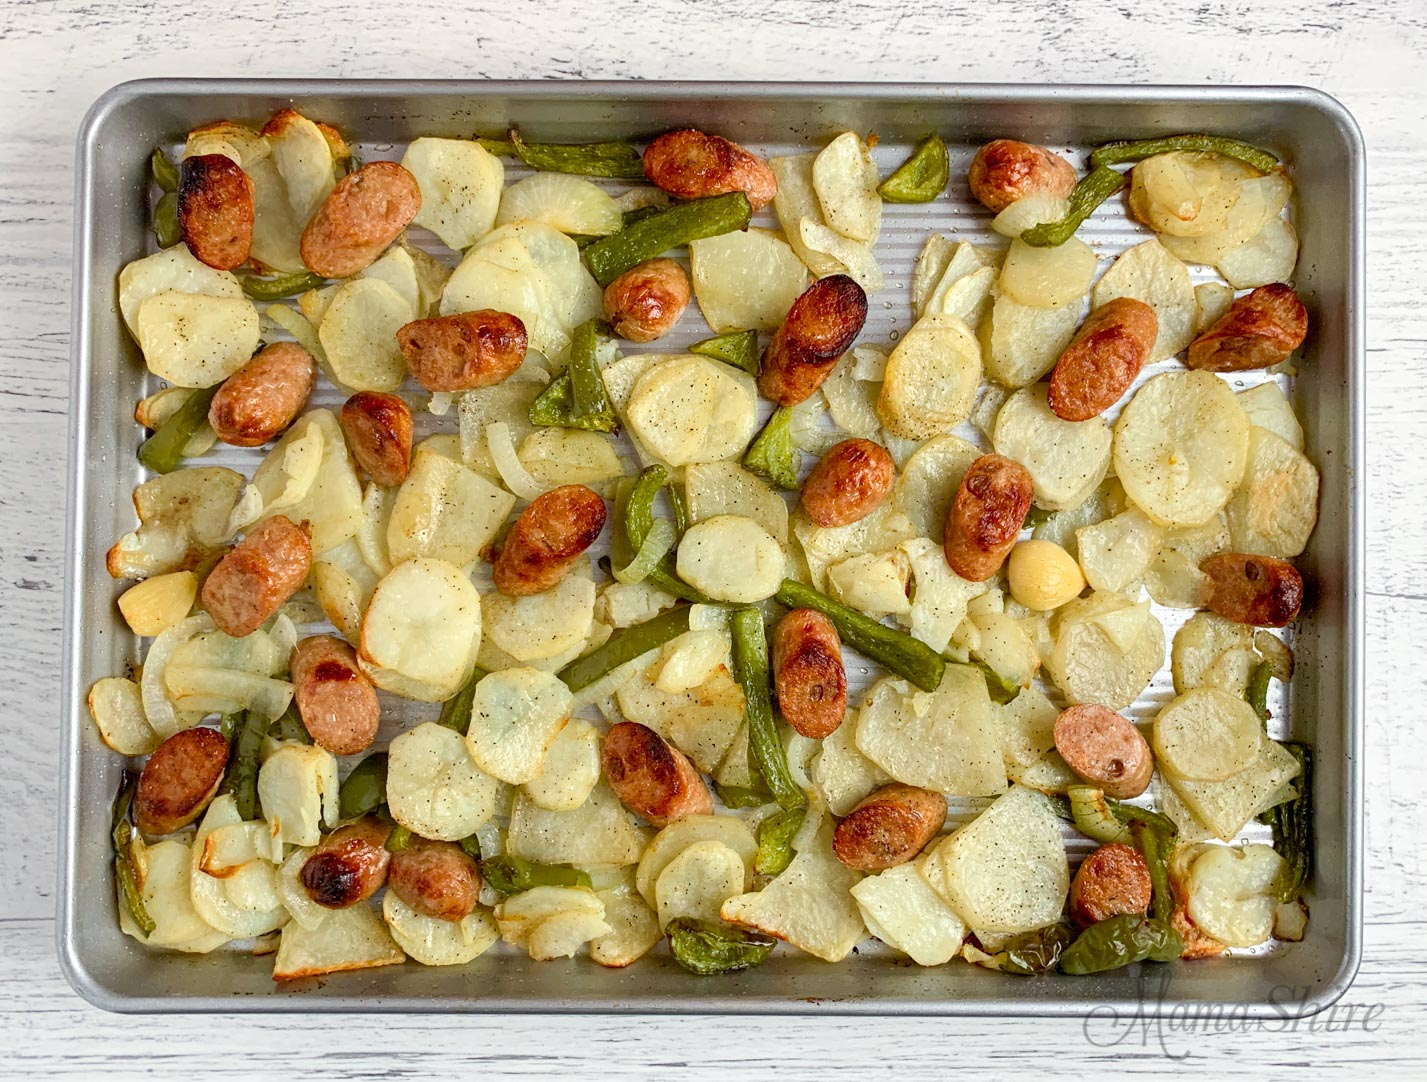 Sheet pan with roasted chicken sausage and potatoes.